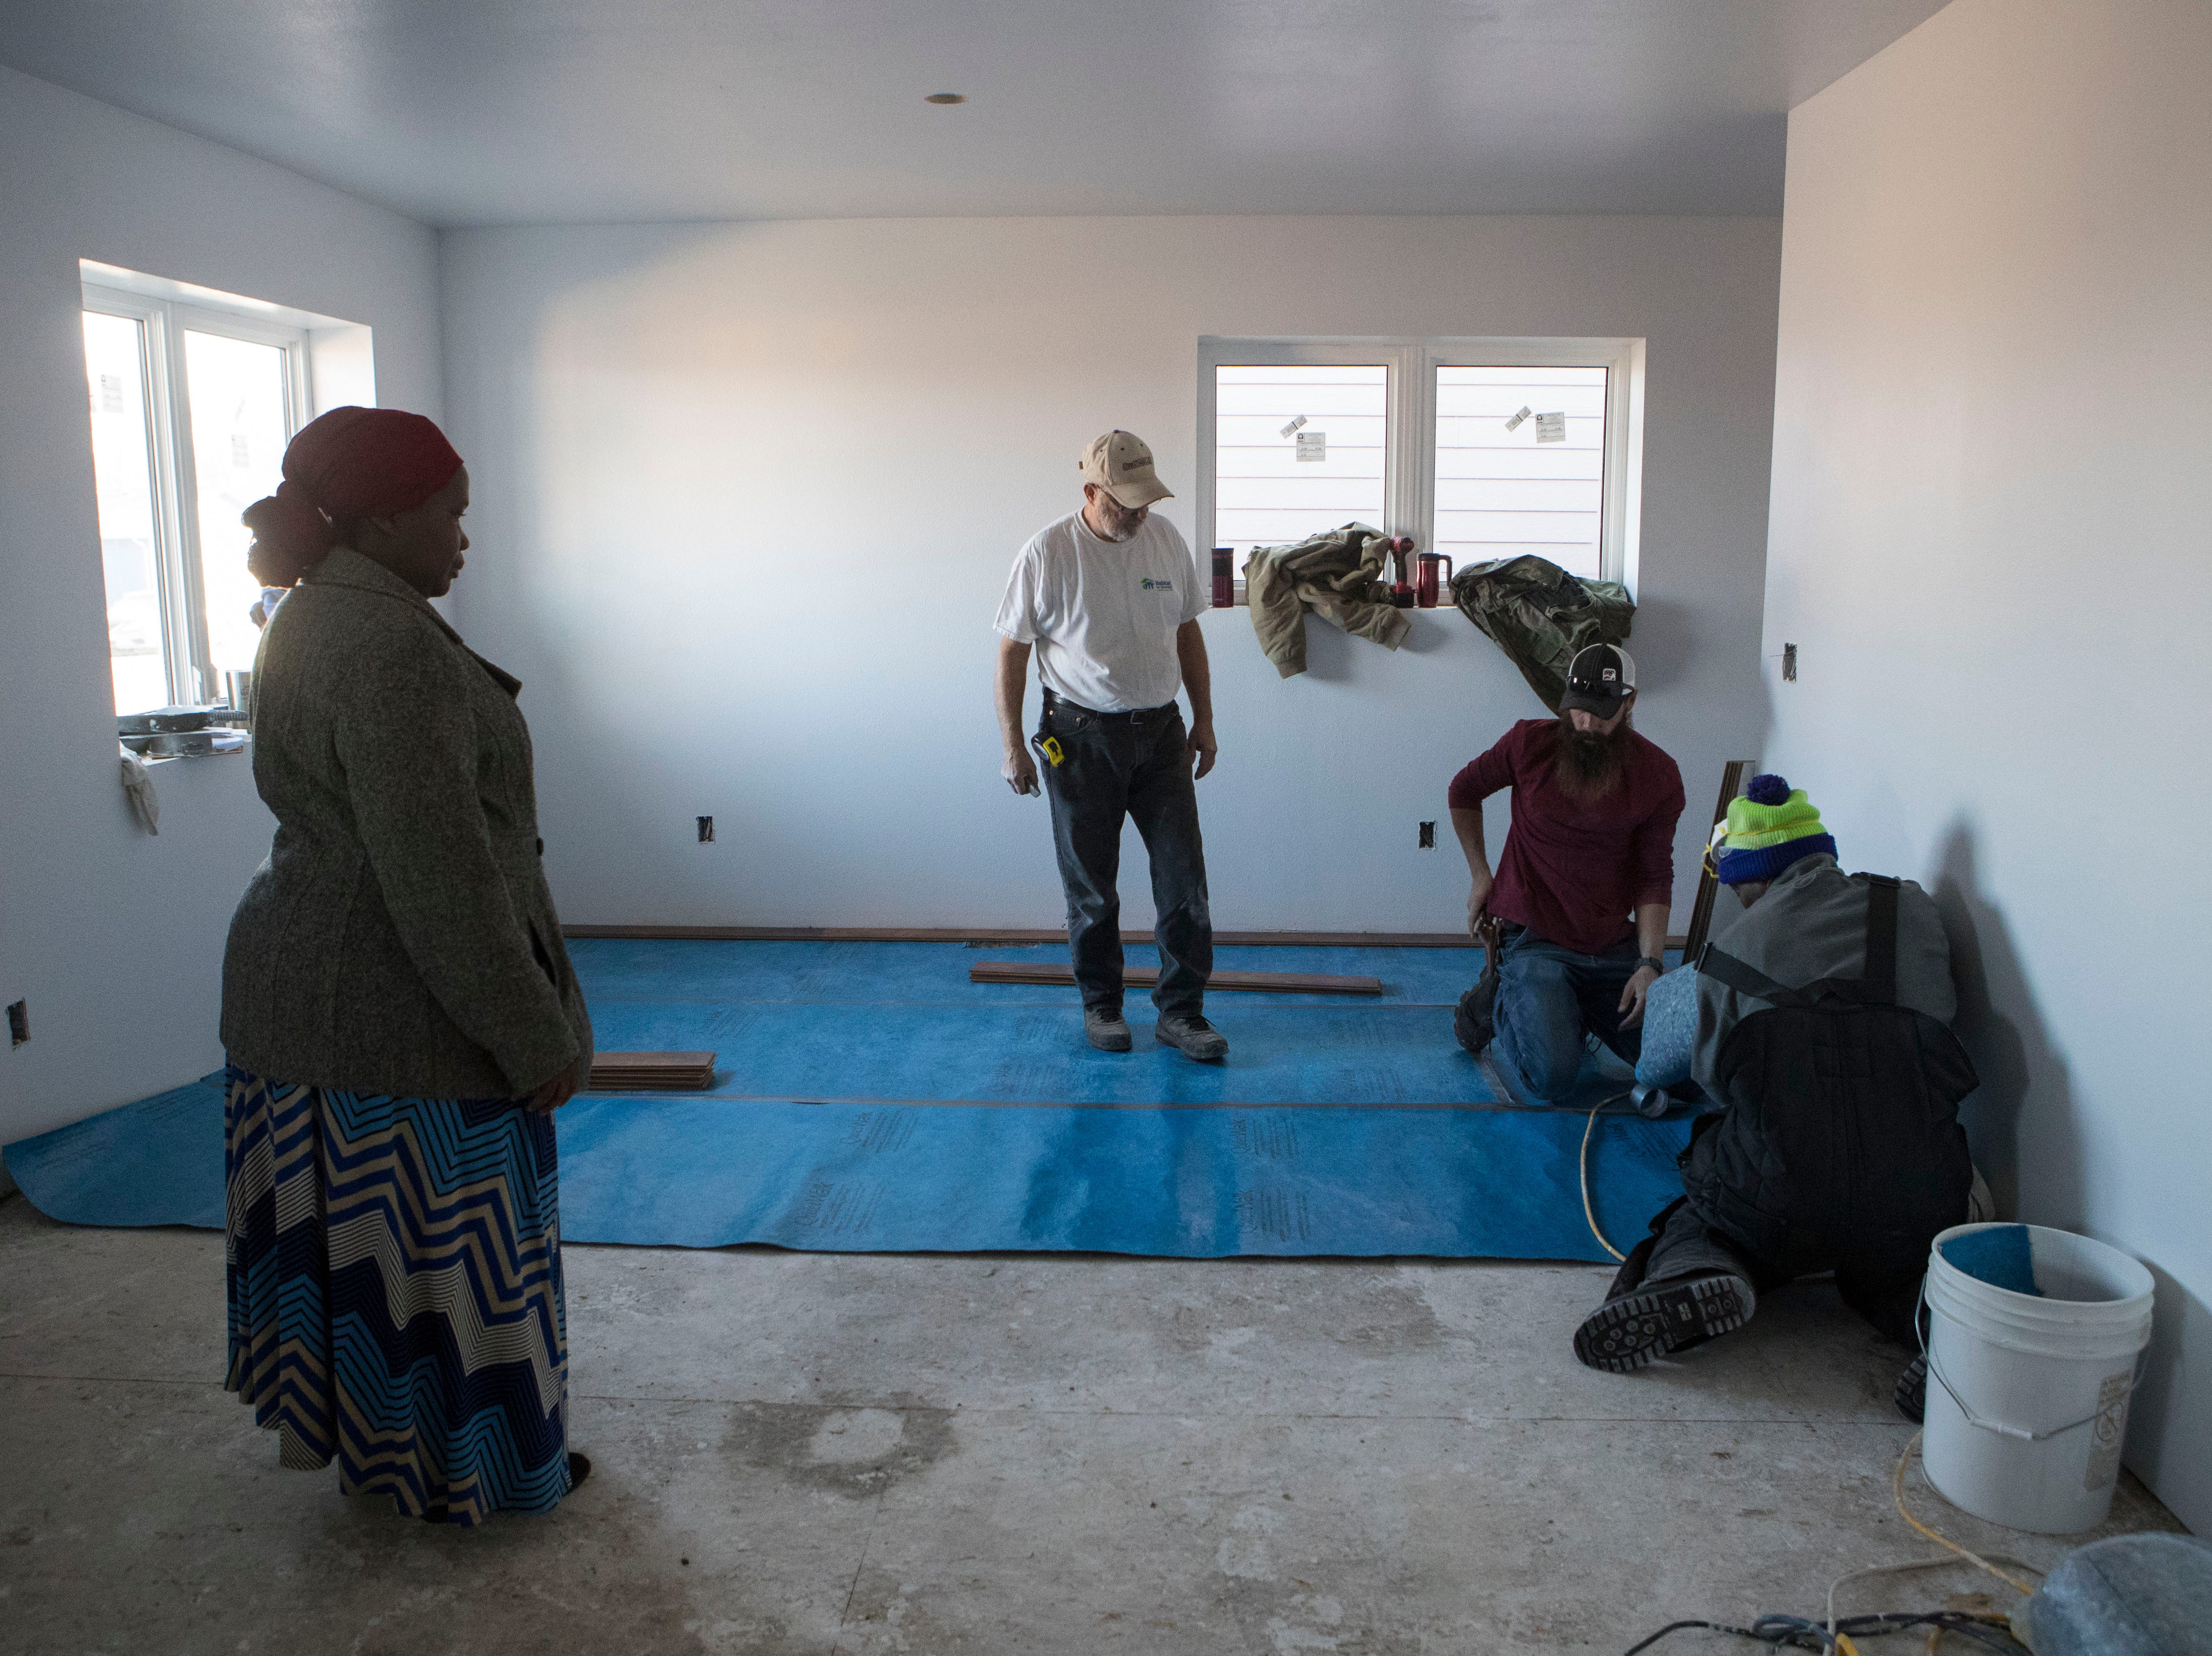 Volunteers for Habitat for Humanity build a house in Sioux Falls, S.D., Thursday, Nov. 15, 2018.